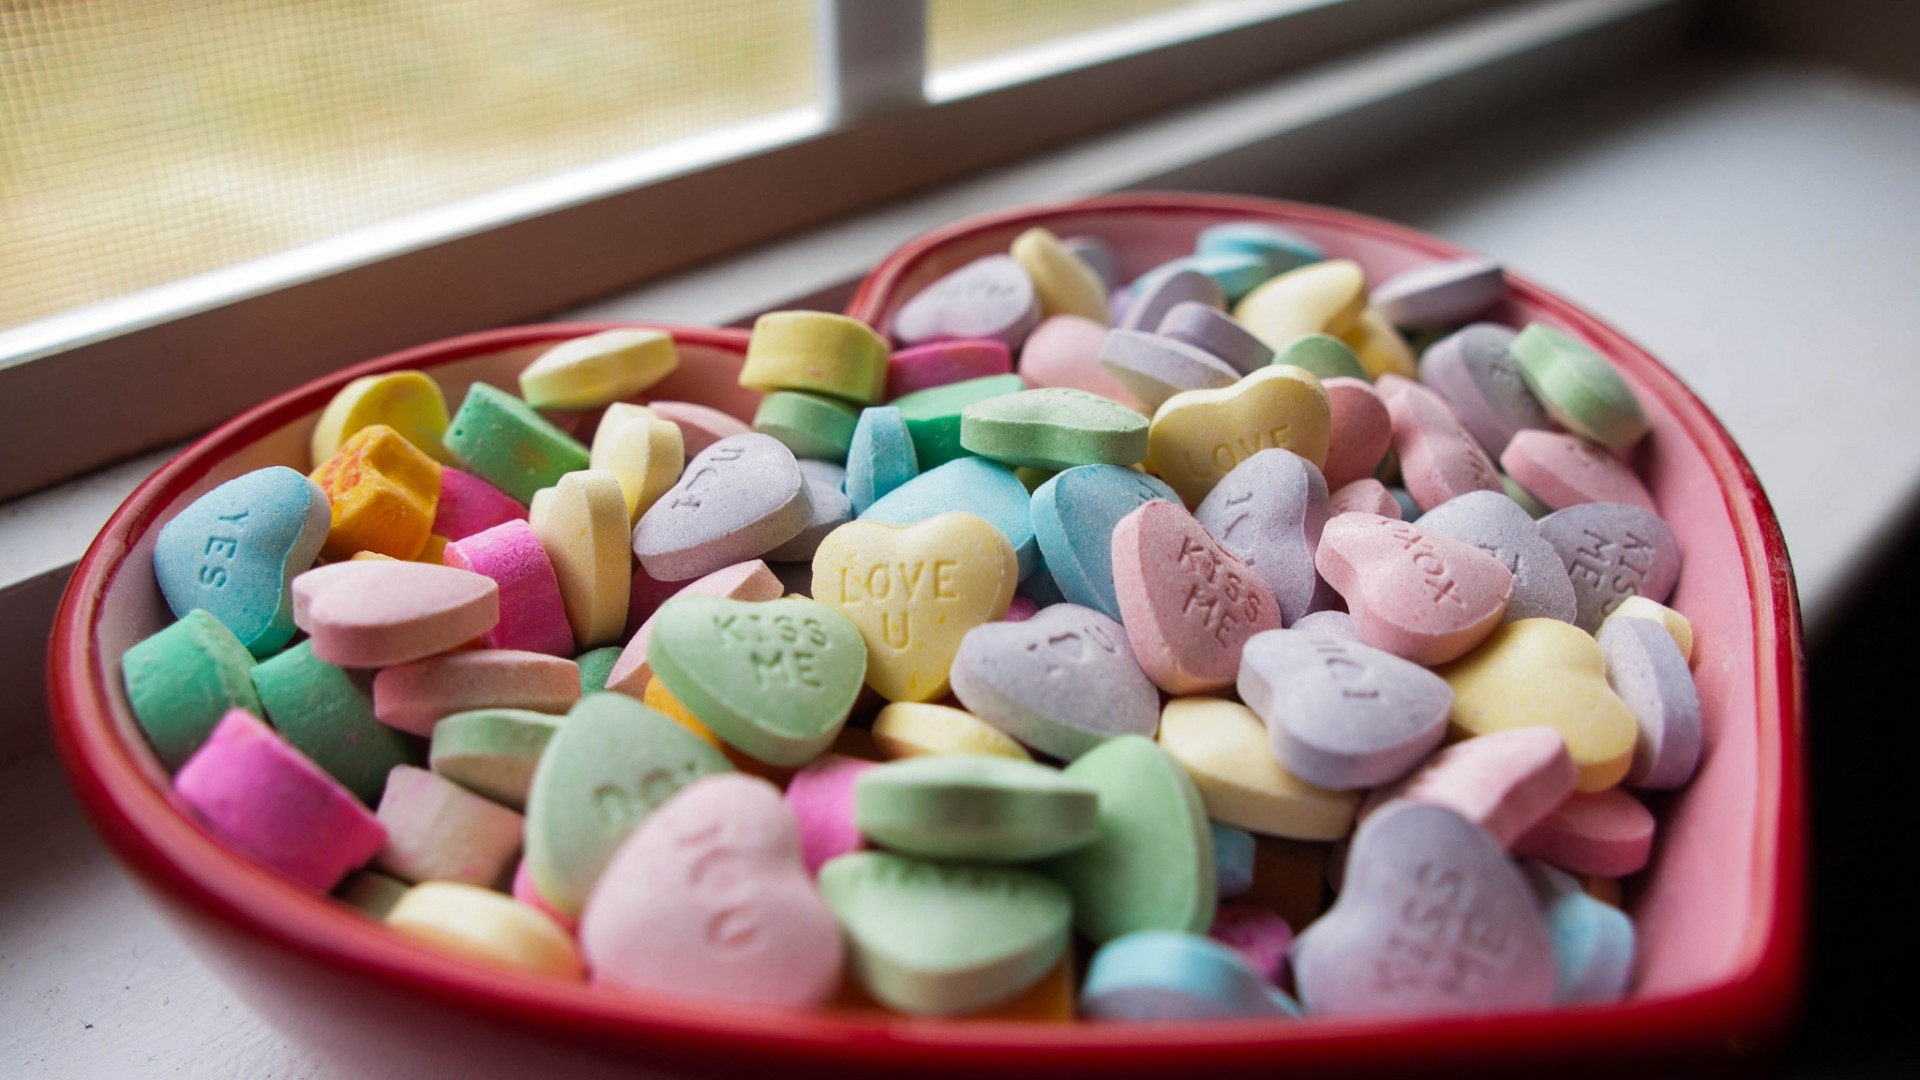 candy heart wallpaper 68 images